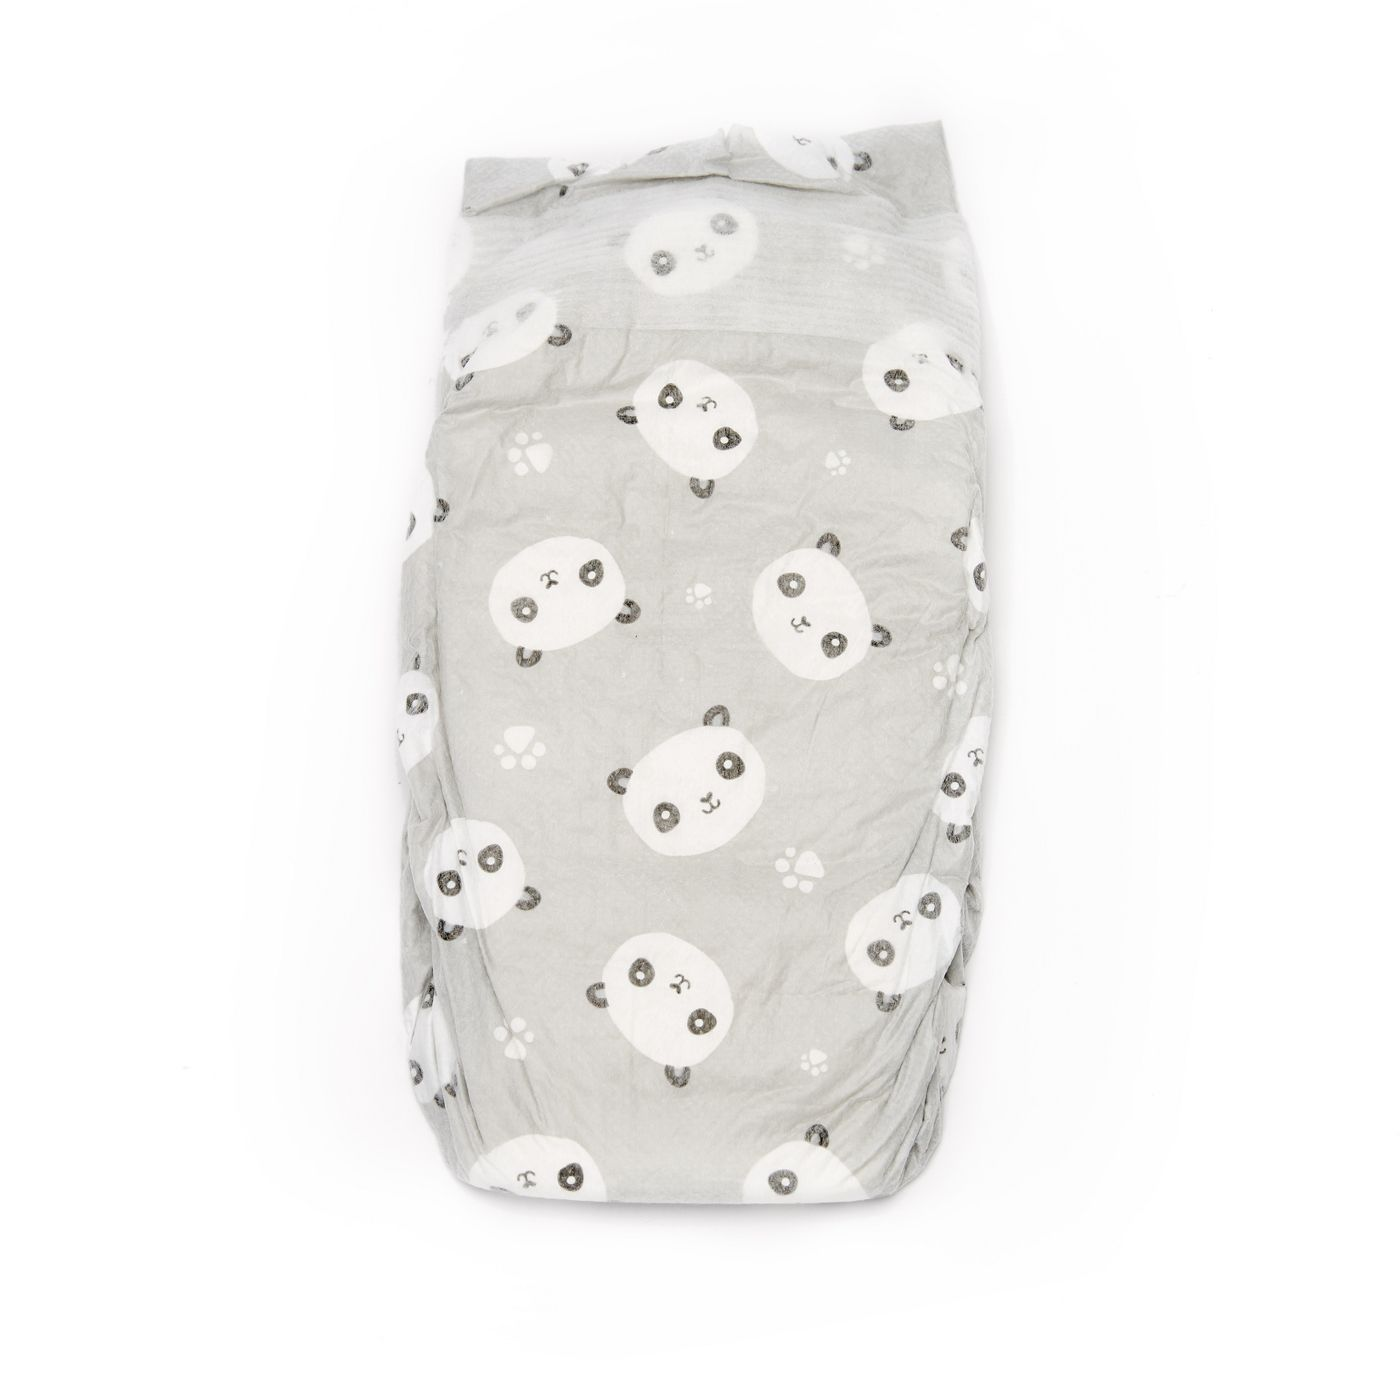 $25 | Disposable Diapers